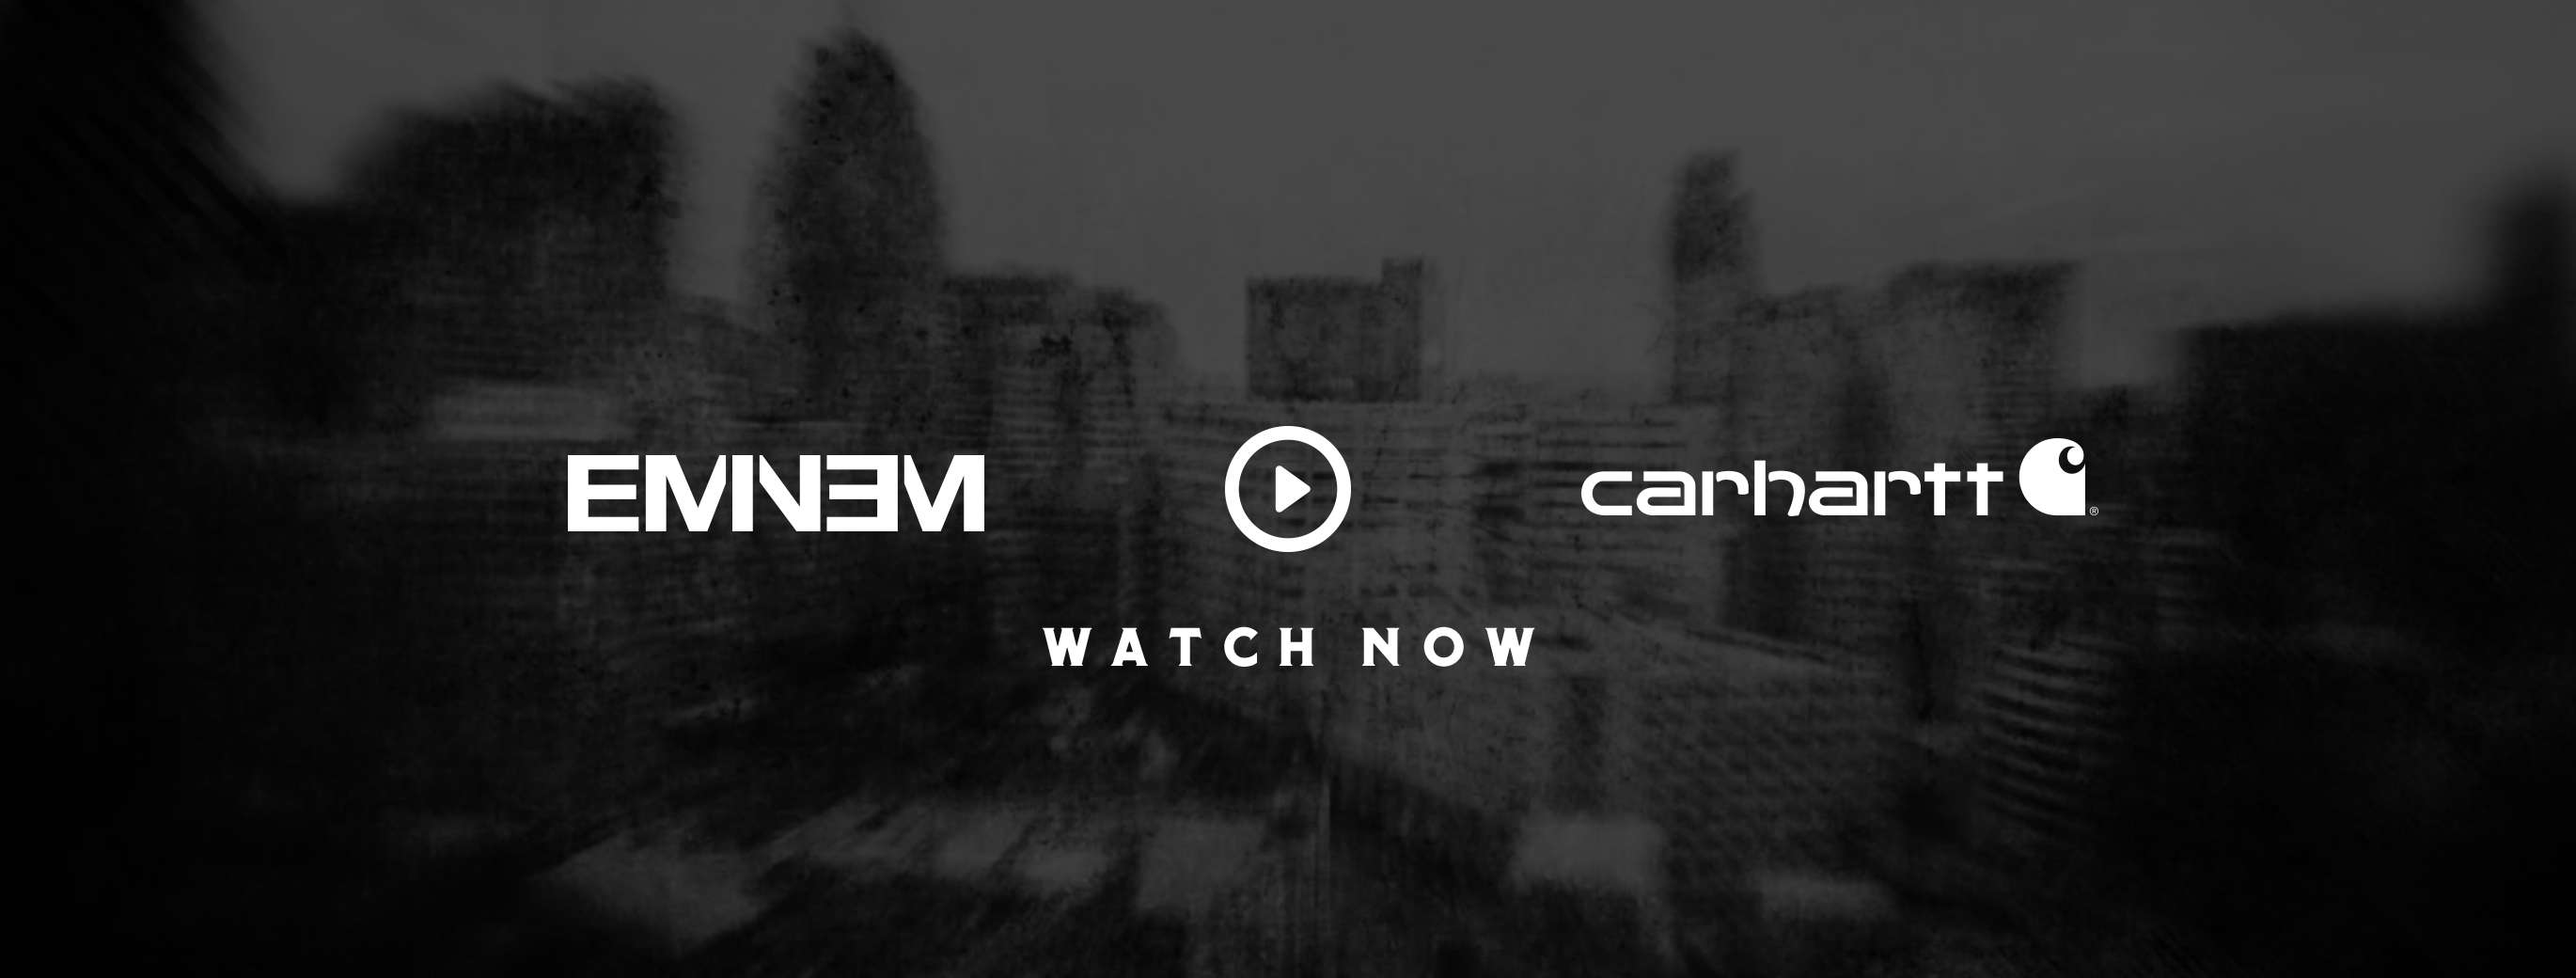 Eminem | Carhartt, Watch Now